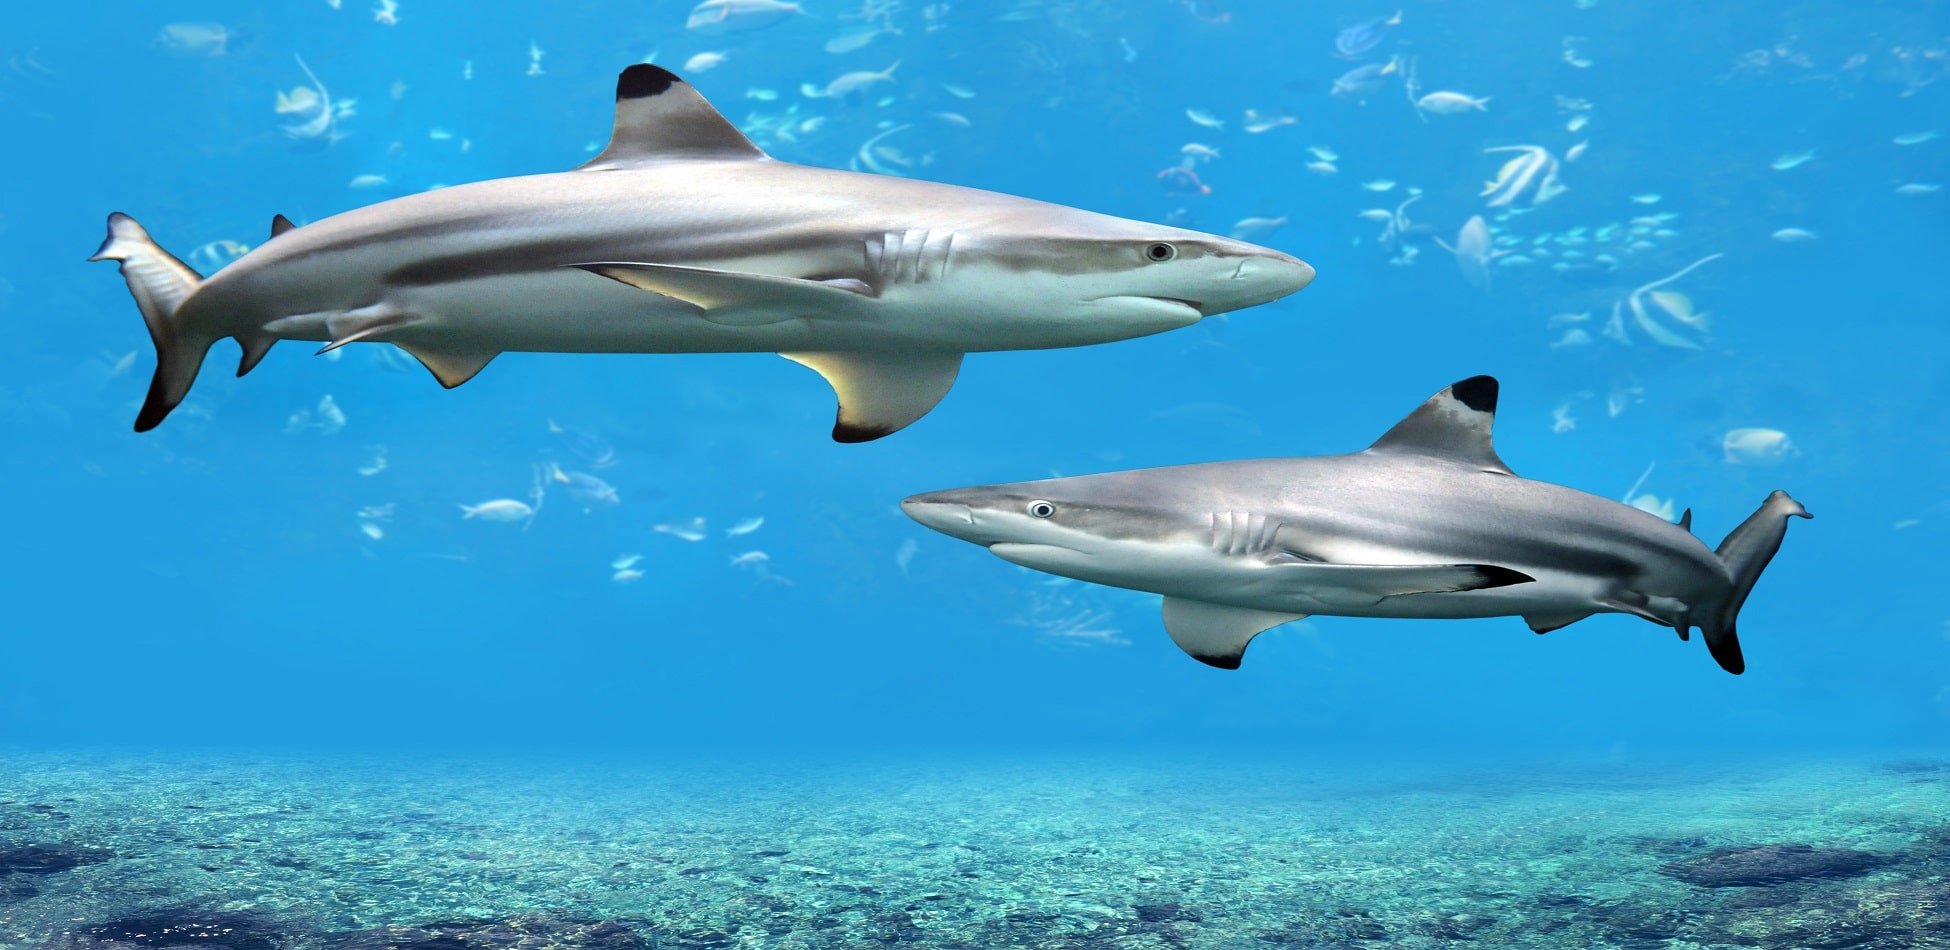 Black Reef sharks swimming